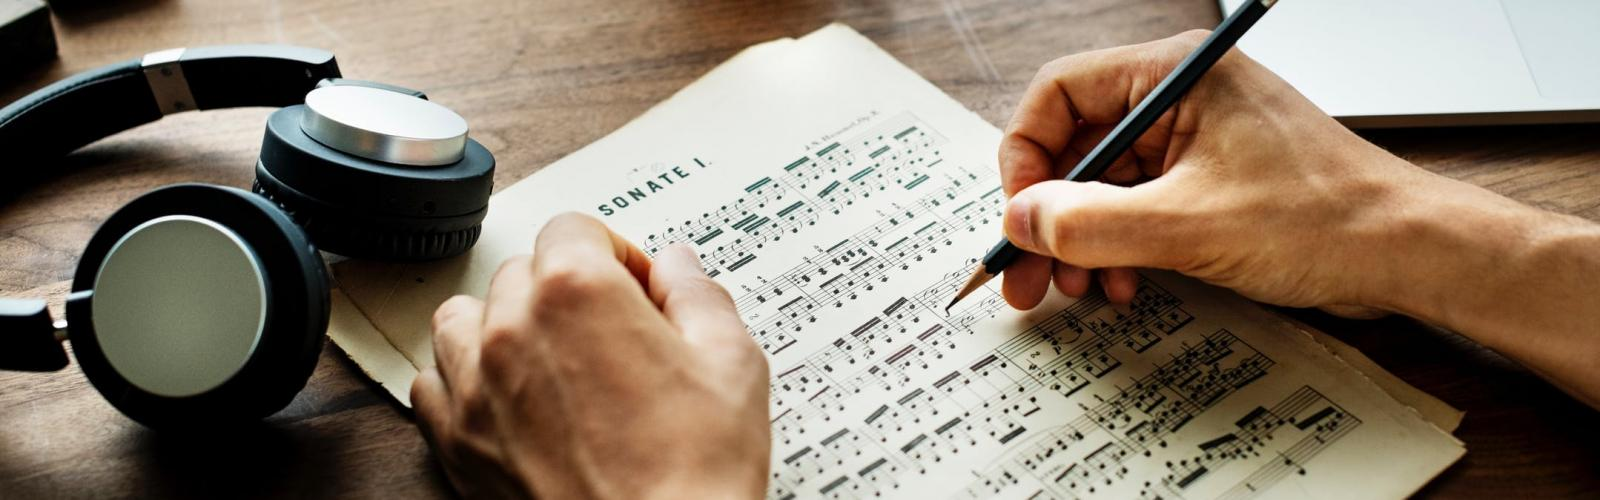 Person Marking up Music Score (Stock Image)